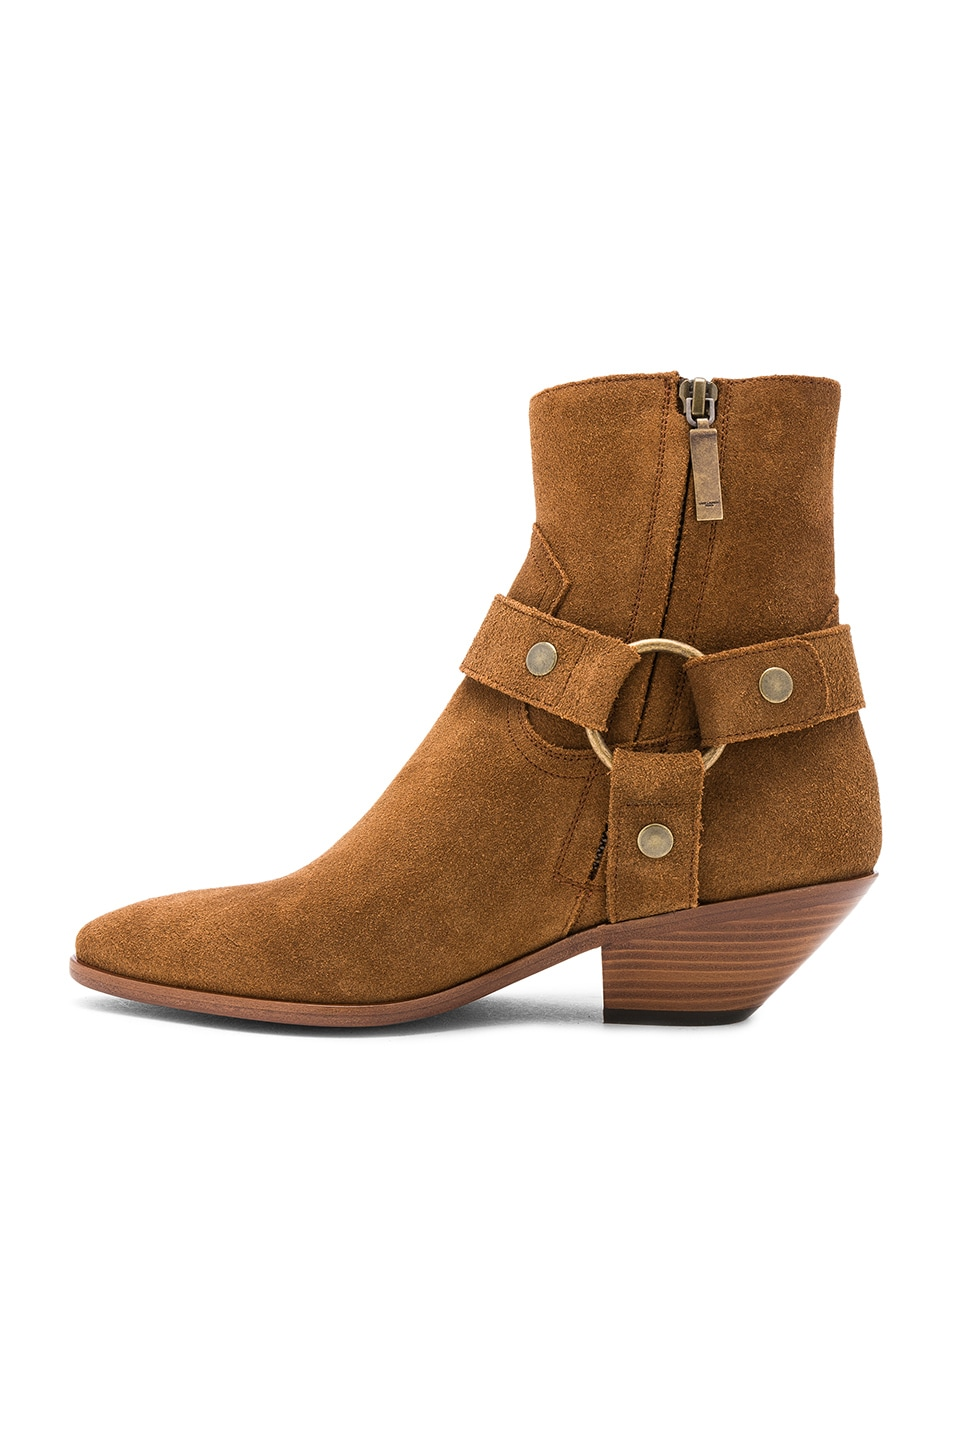 Image 5 of Saint Laurent Suede West Strap Ankle Boots in Hazelnut